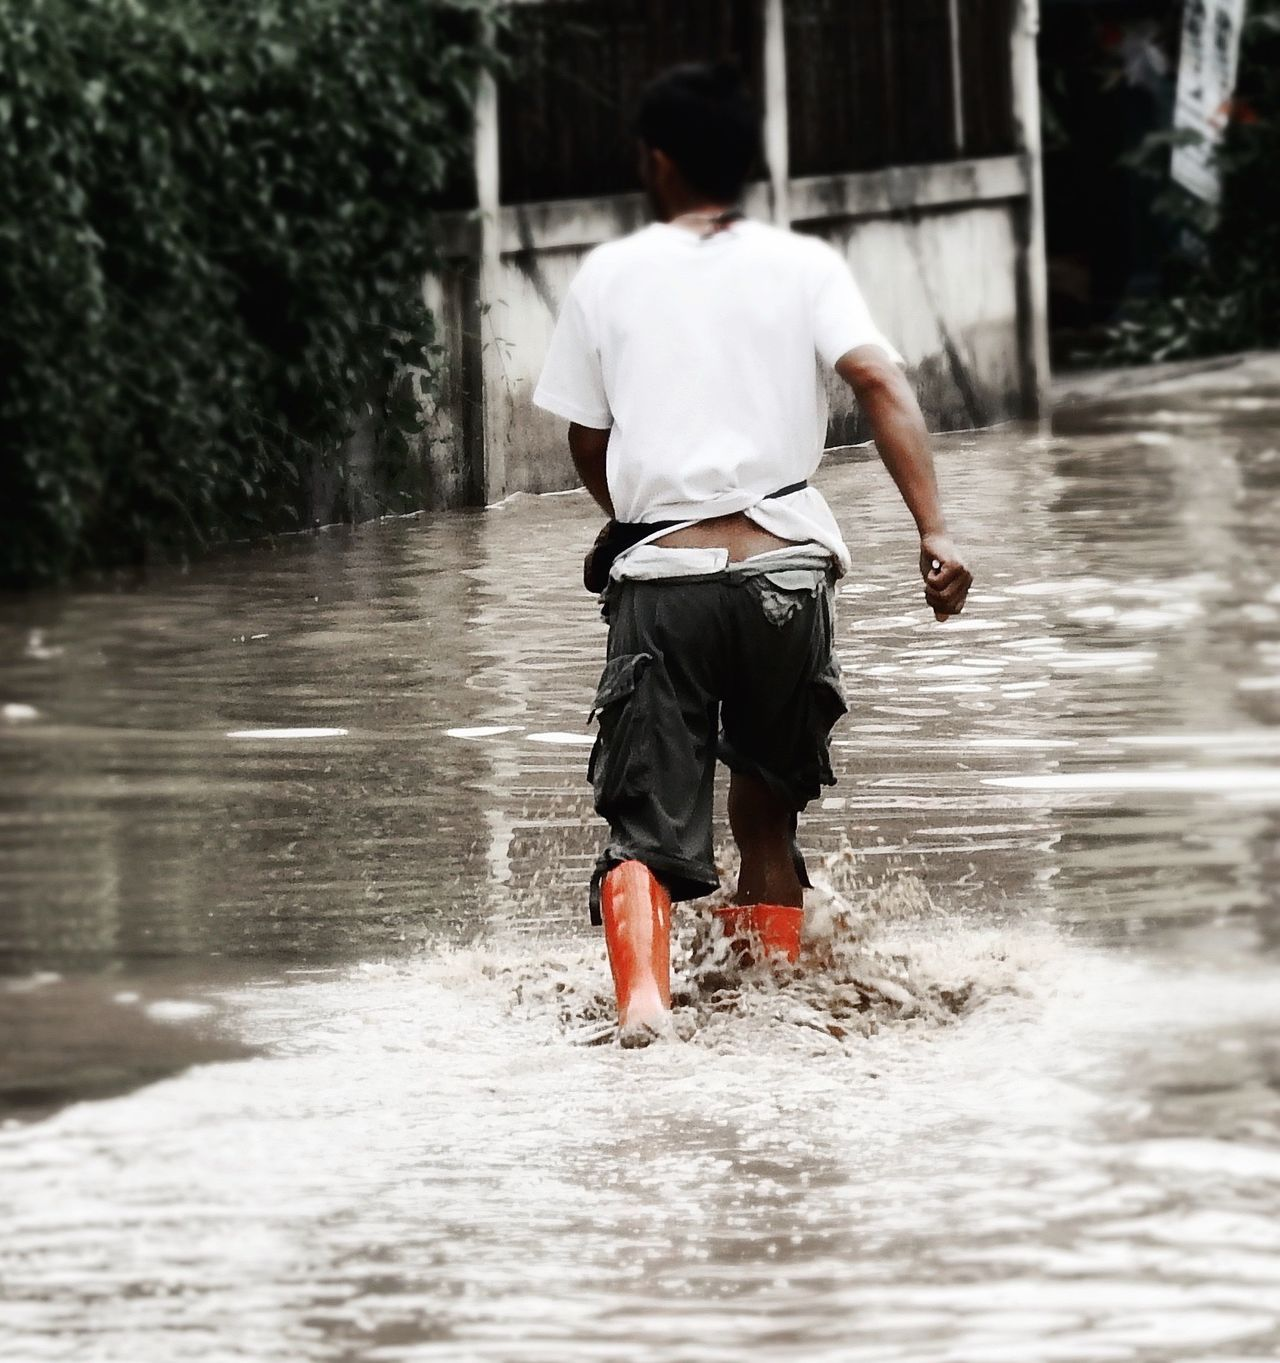 Two Is Better Than One Wellington Boots Red Full Length Motion Water Flood Monsoon Casual Clothing Splash Ripples Reflections Focus On Foreground Wet